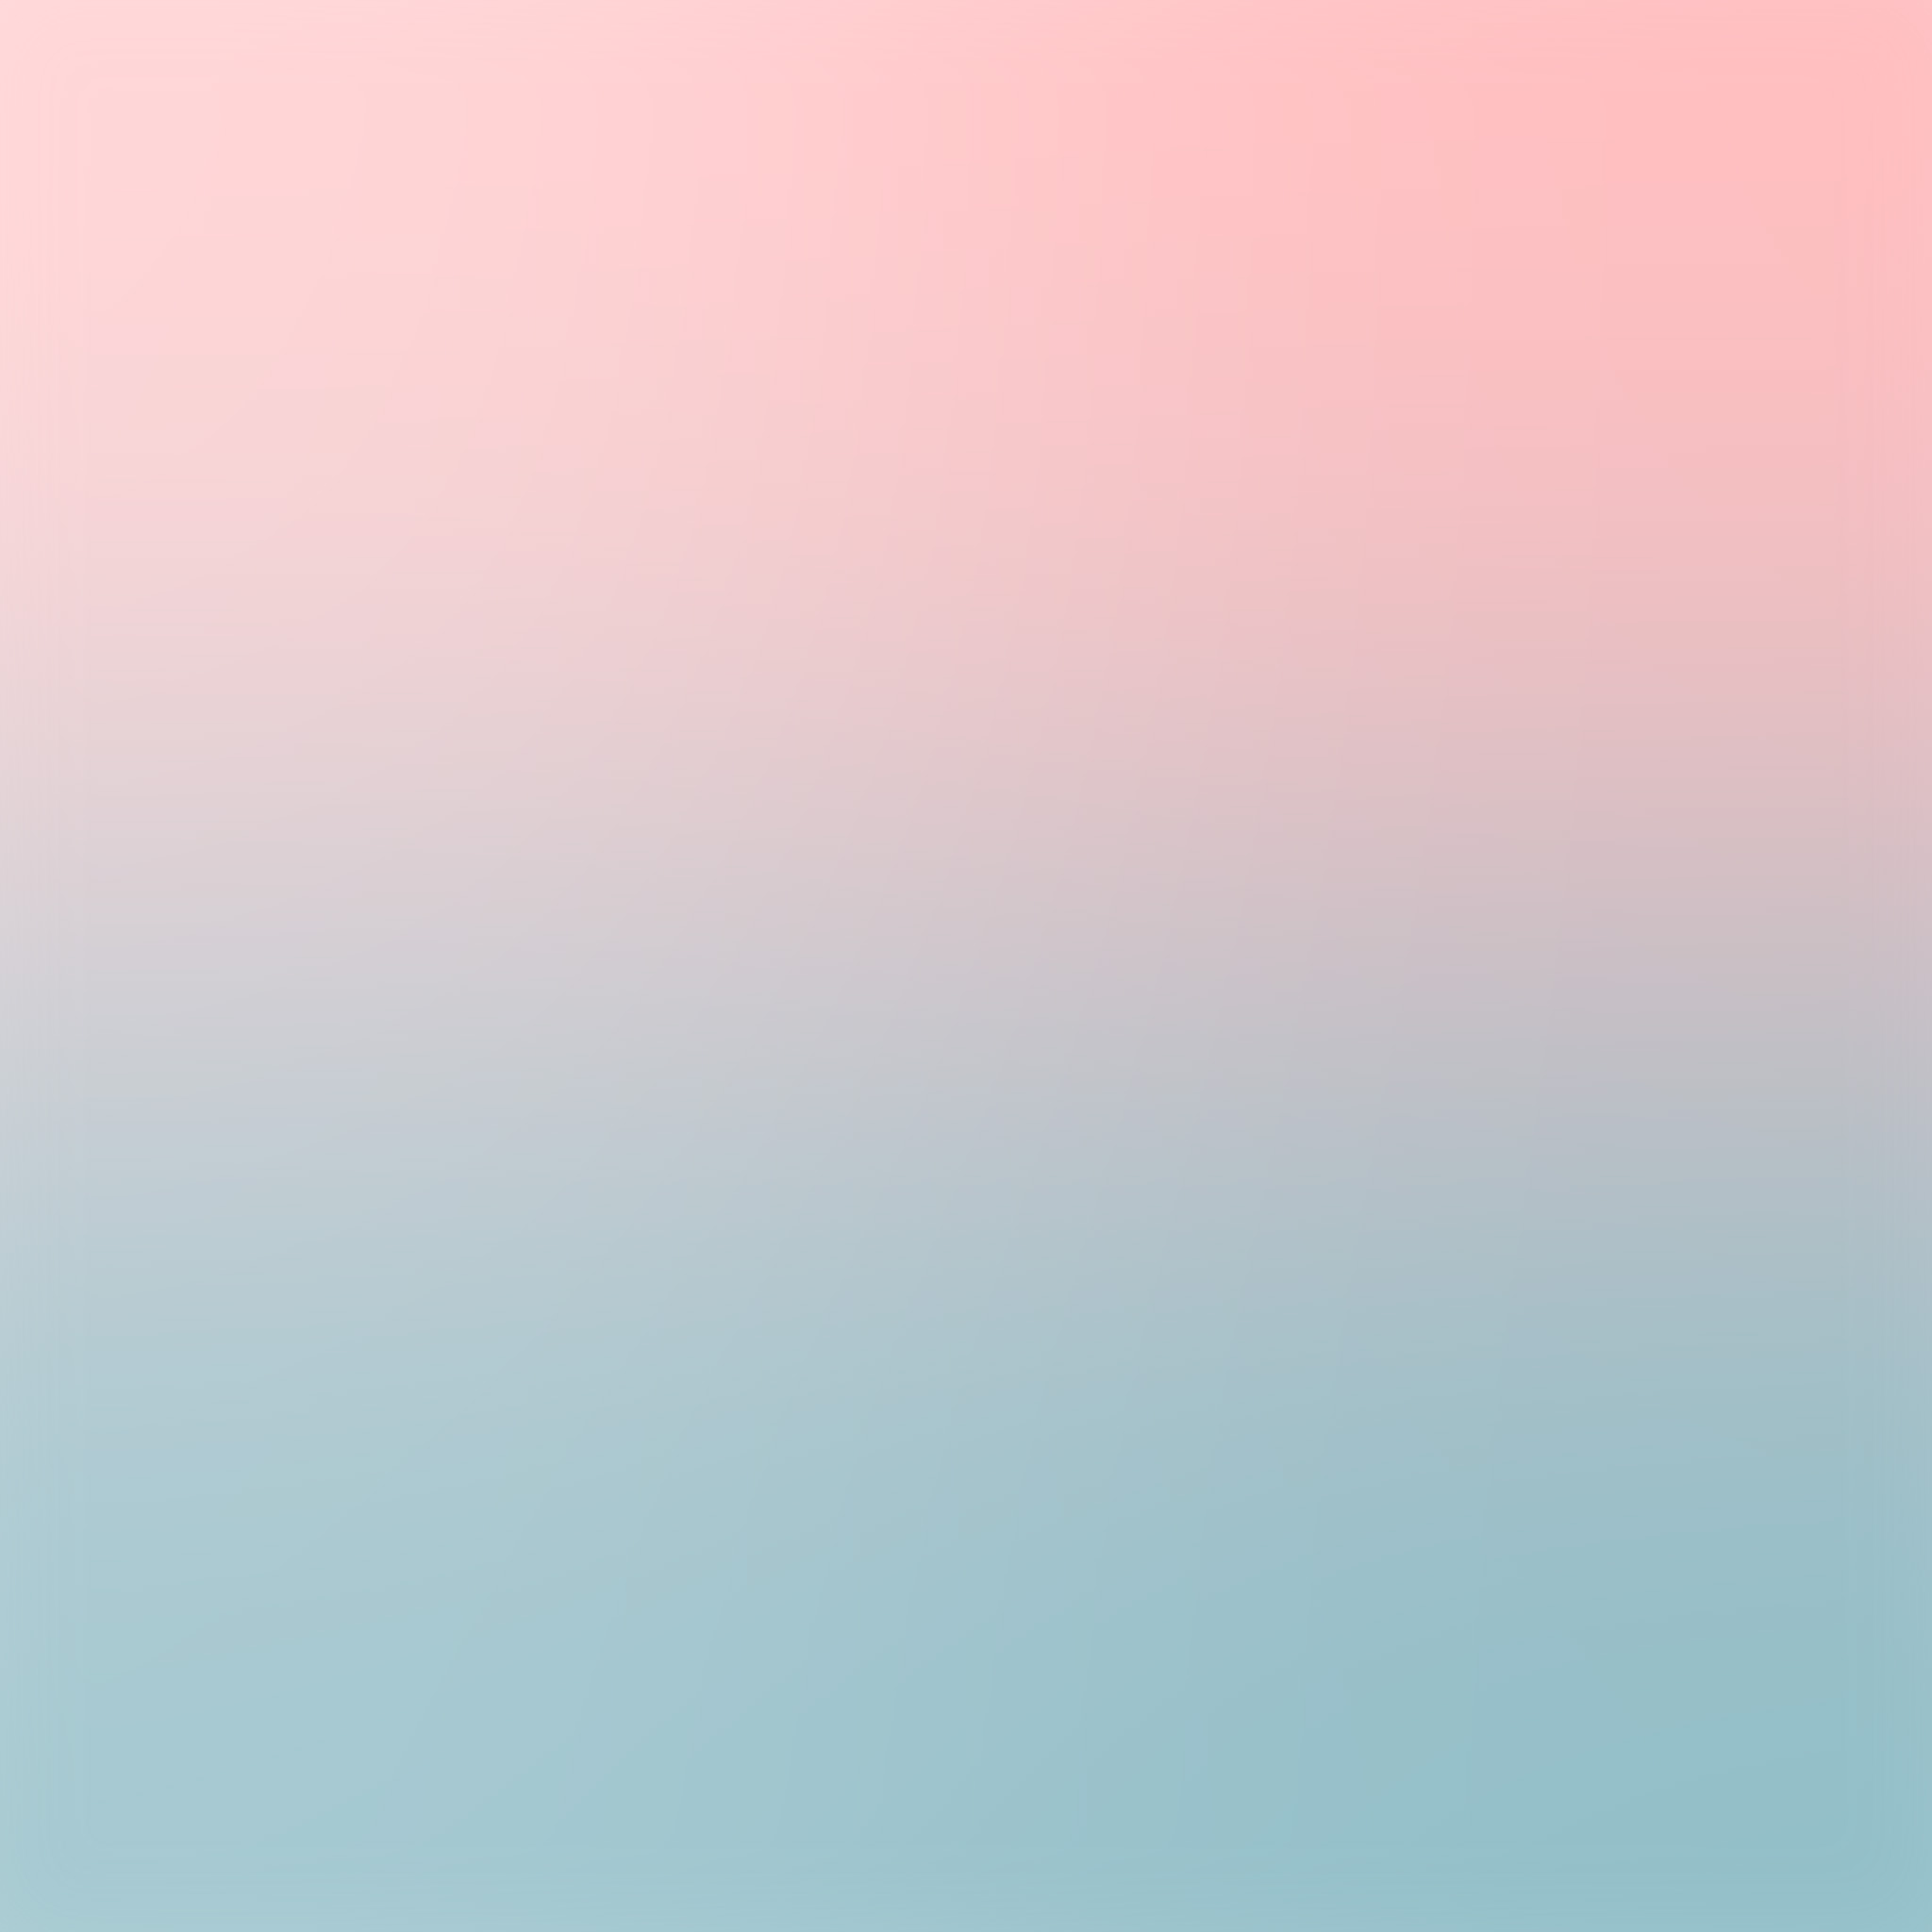 Car Wallpapers For Iphone Se Sm07 Pink Blue Soft Pastel Blur Gradation Wallpaper